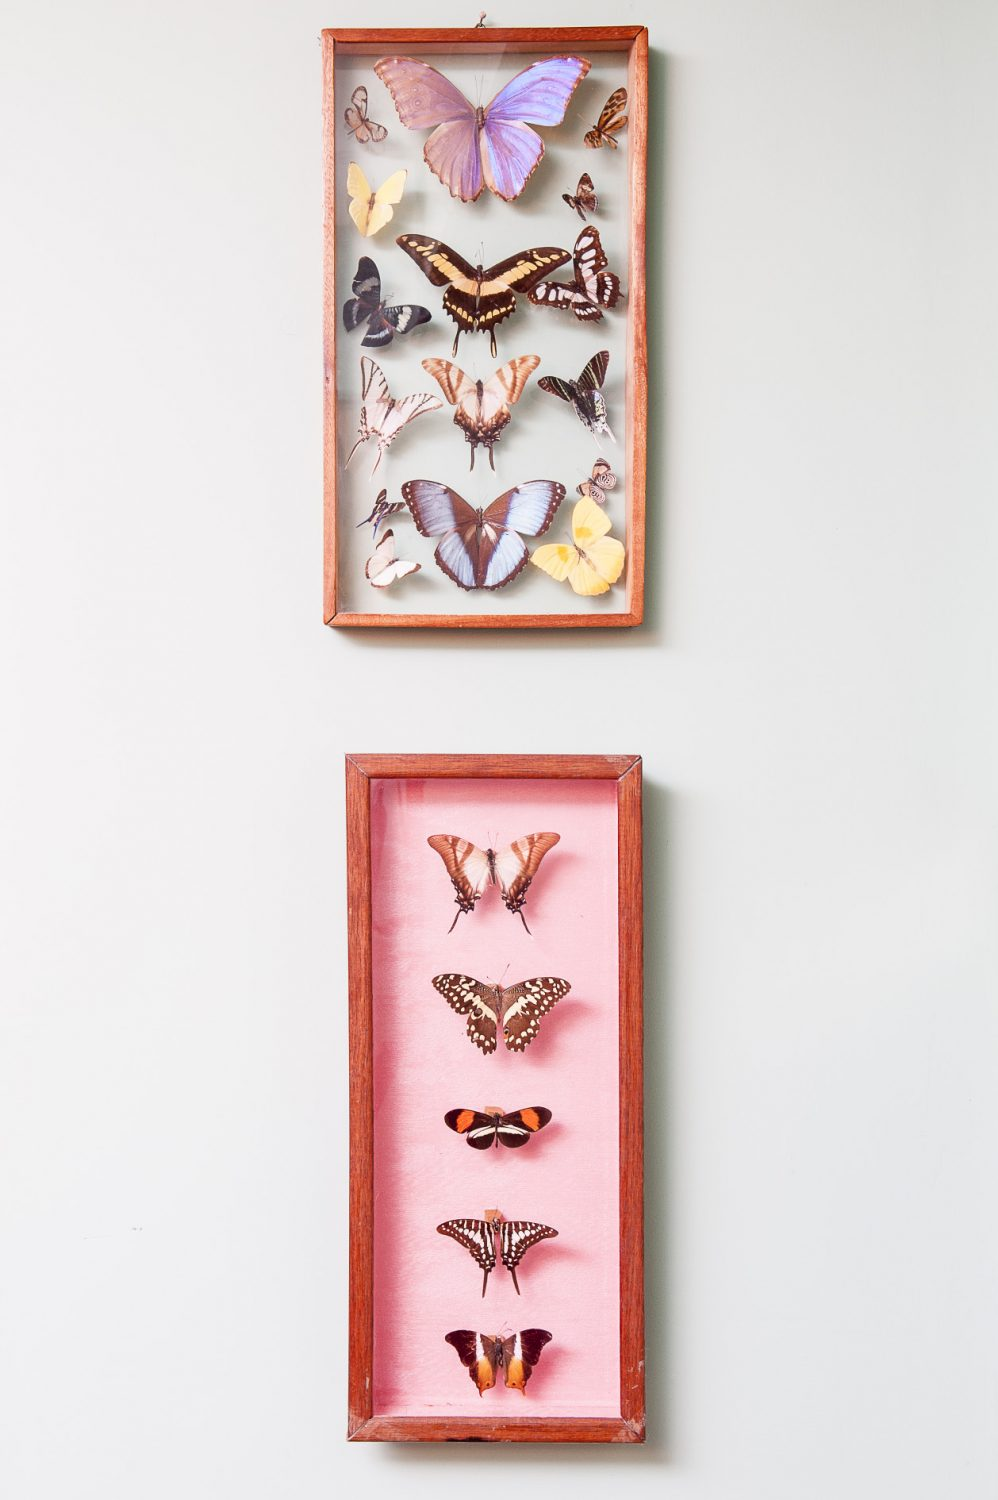 A well-preserved collection of butterflies